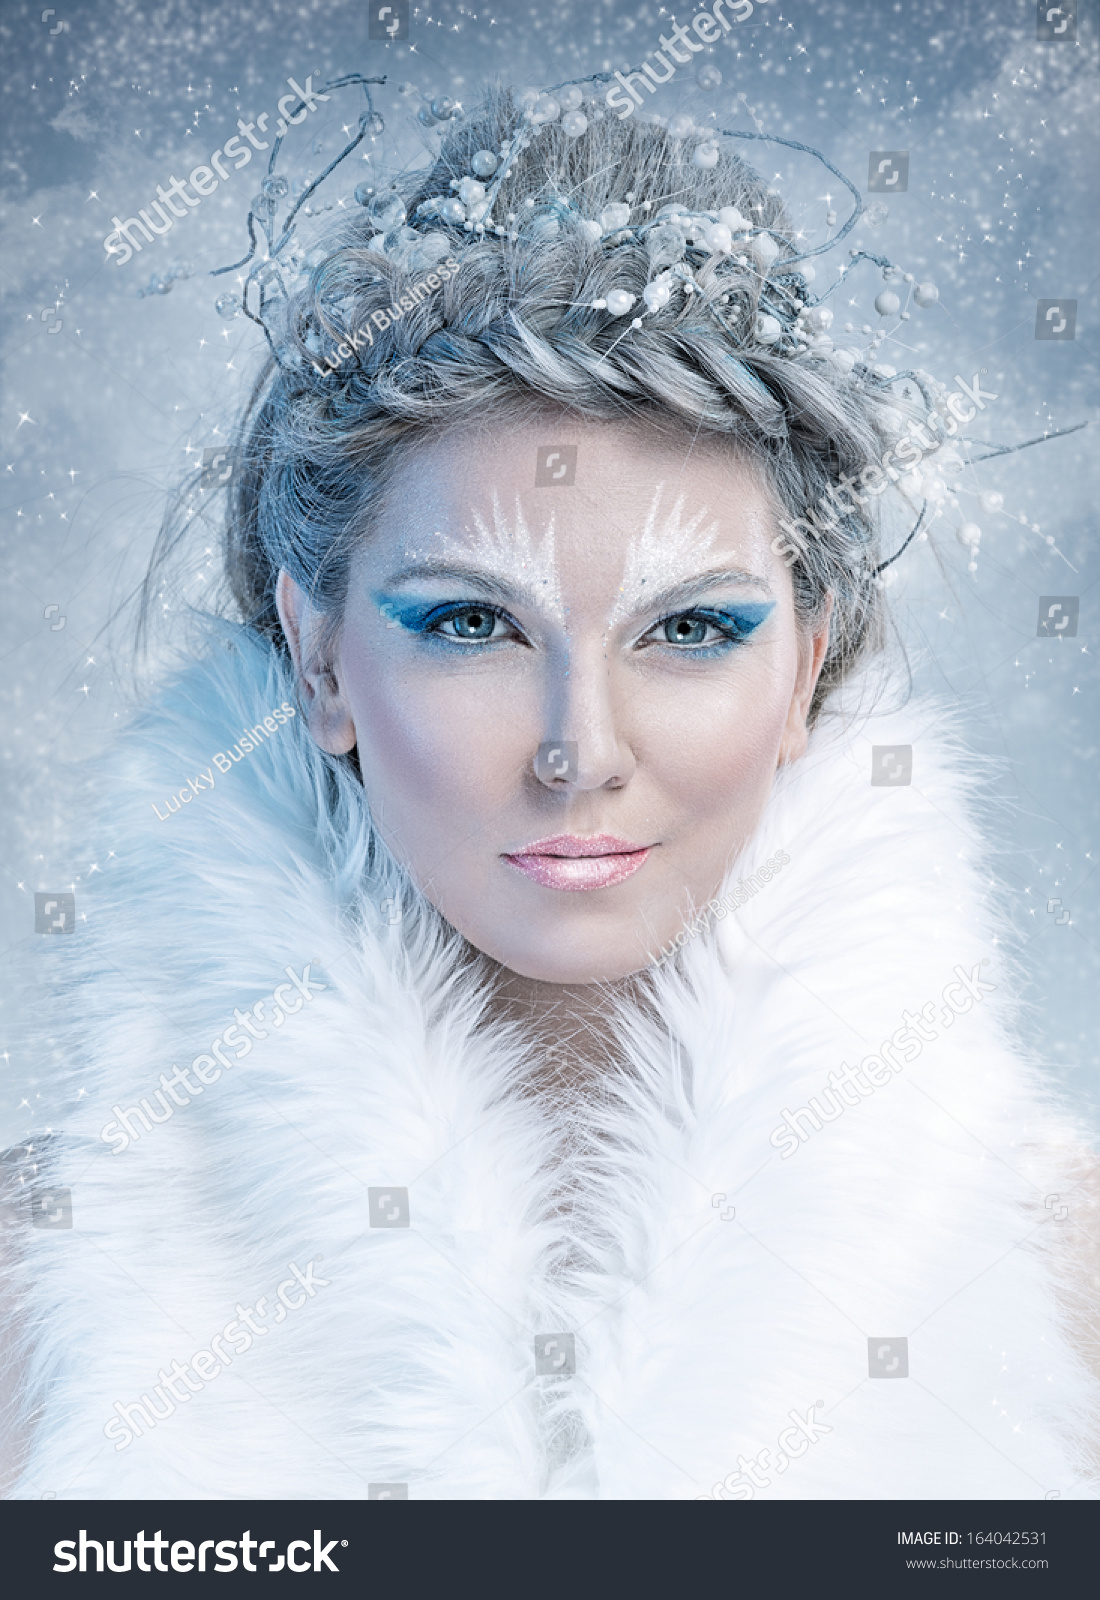 Ice Queen Beautiful Woman Winter Professional Stock Photo